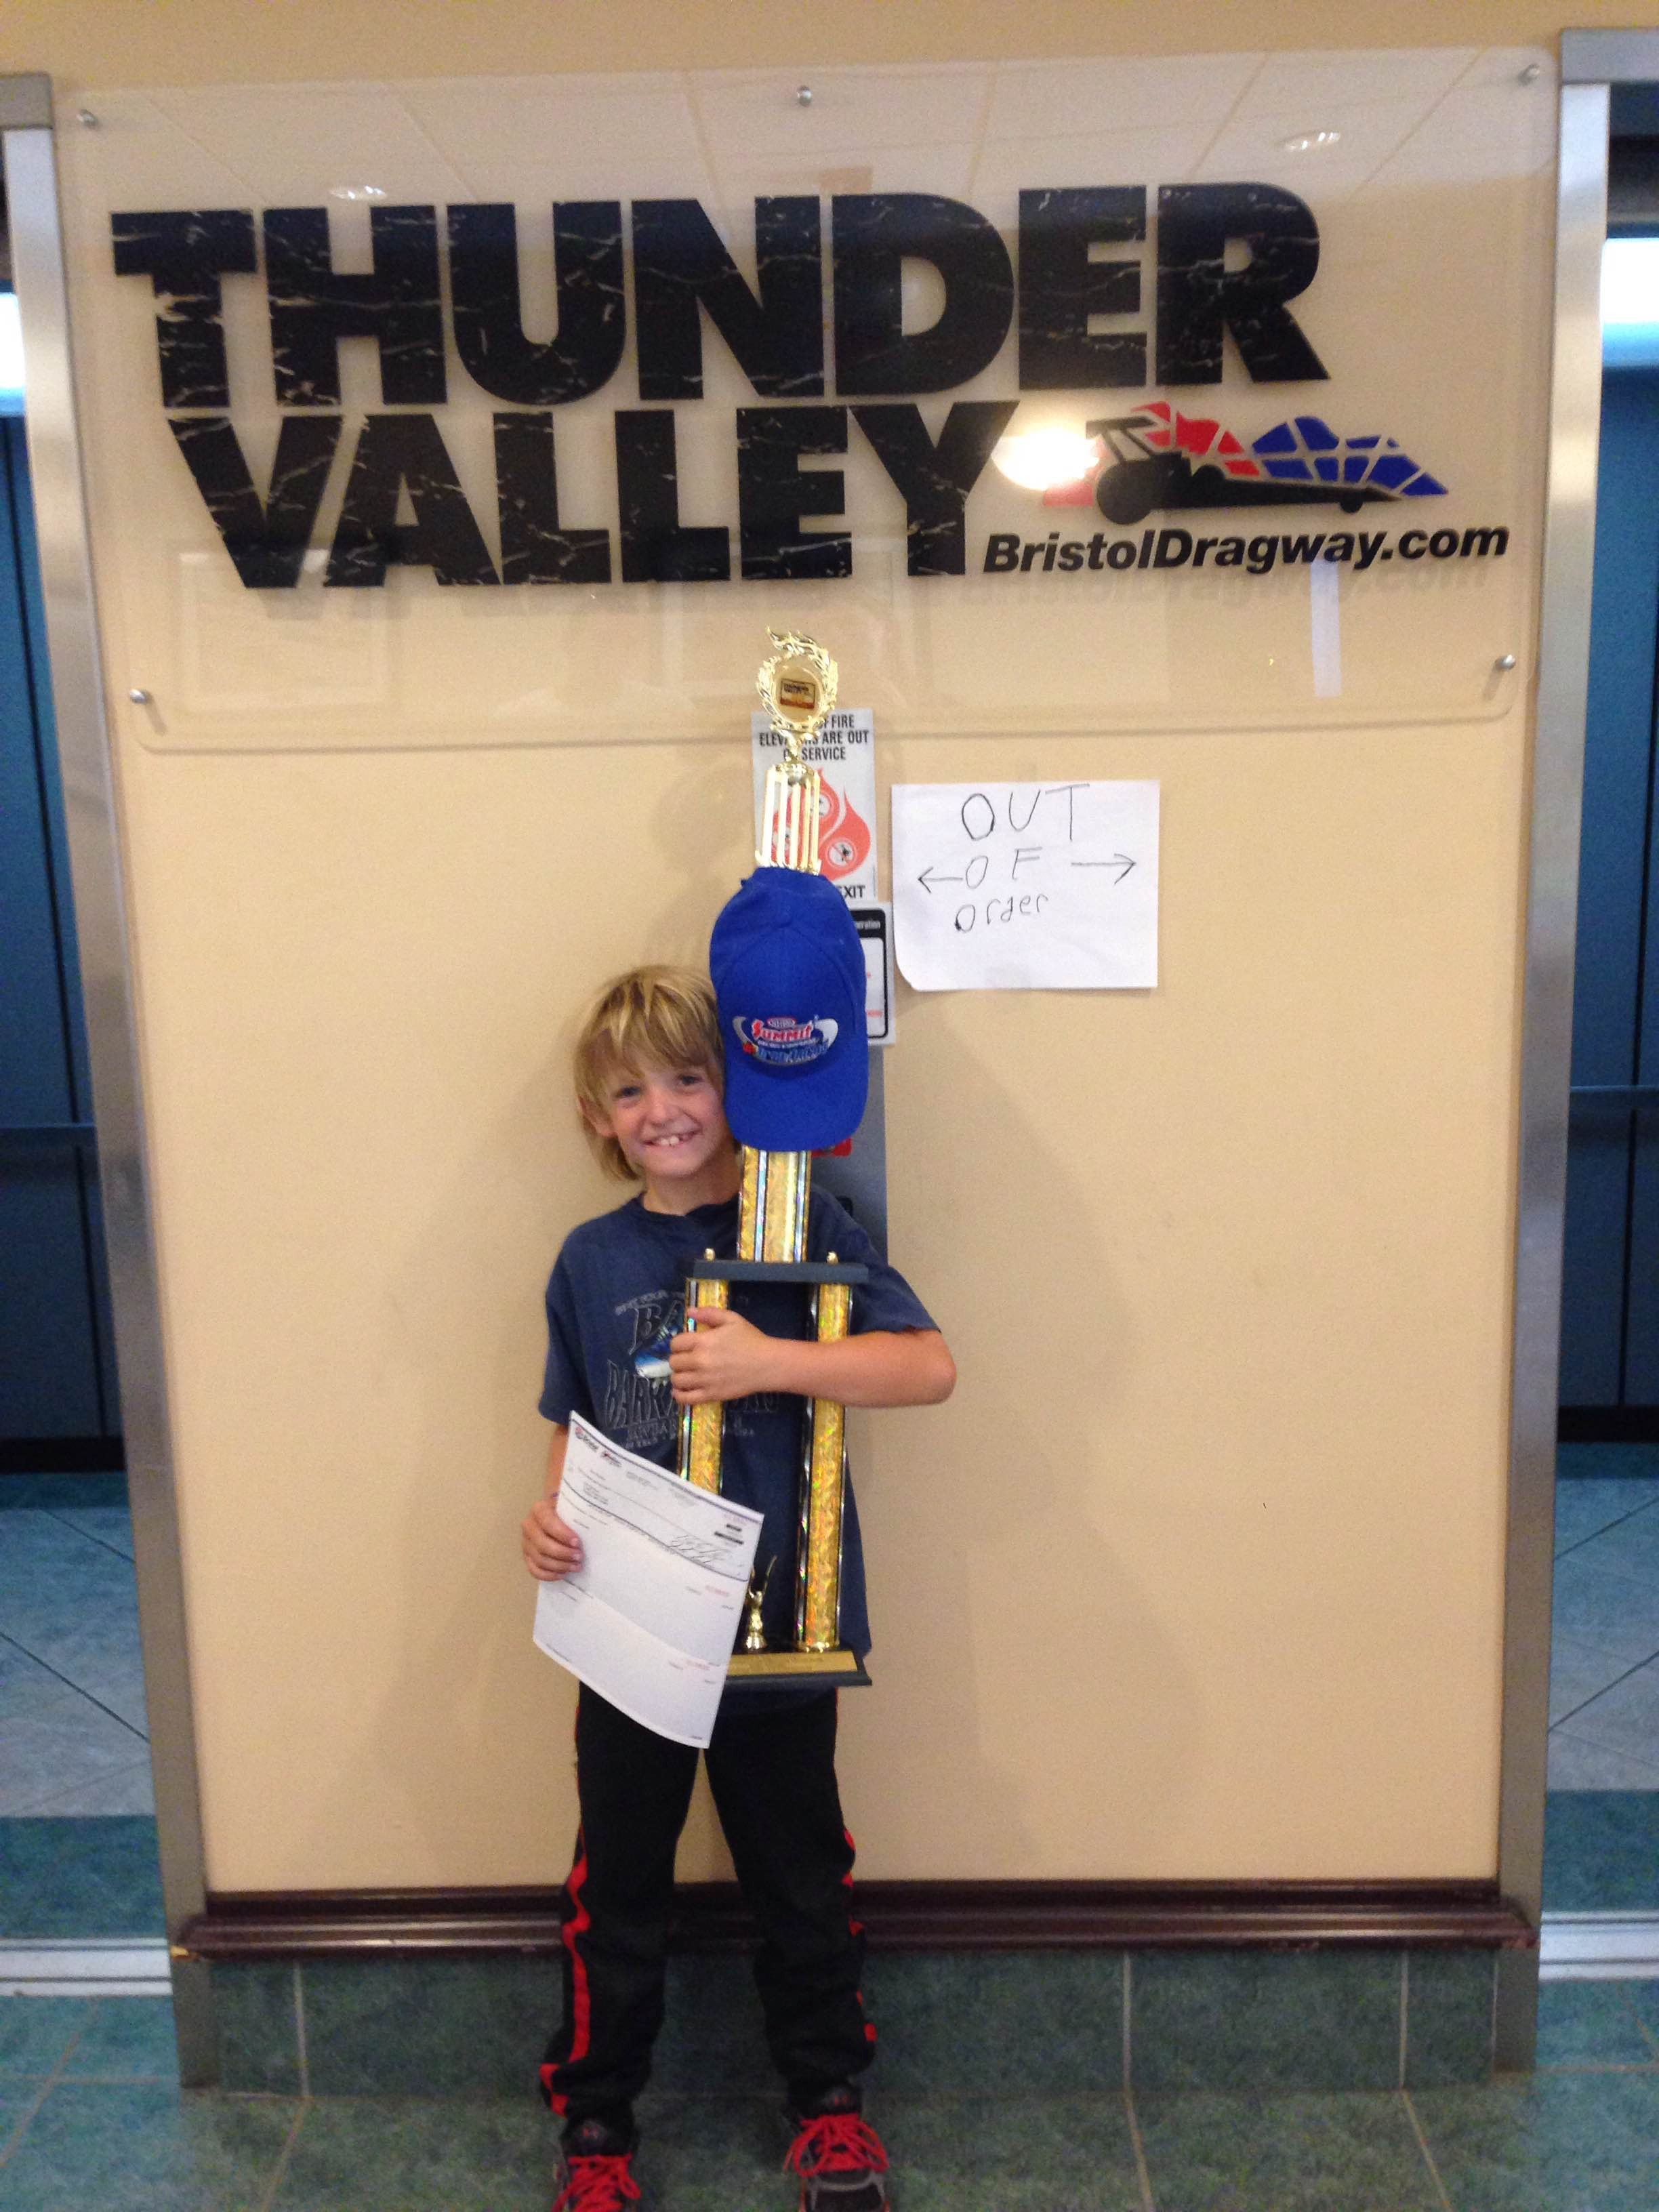 Zach Shirkey - 6-9 year old Eastern Conference Finals Runner up